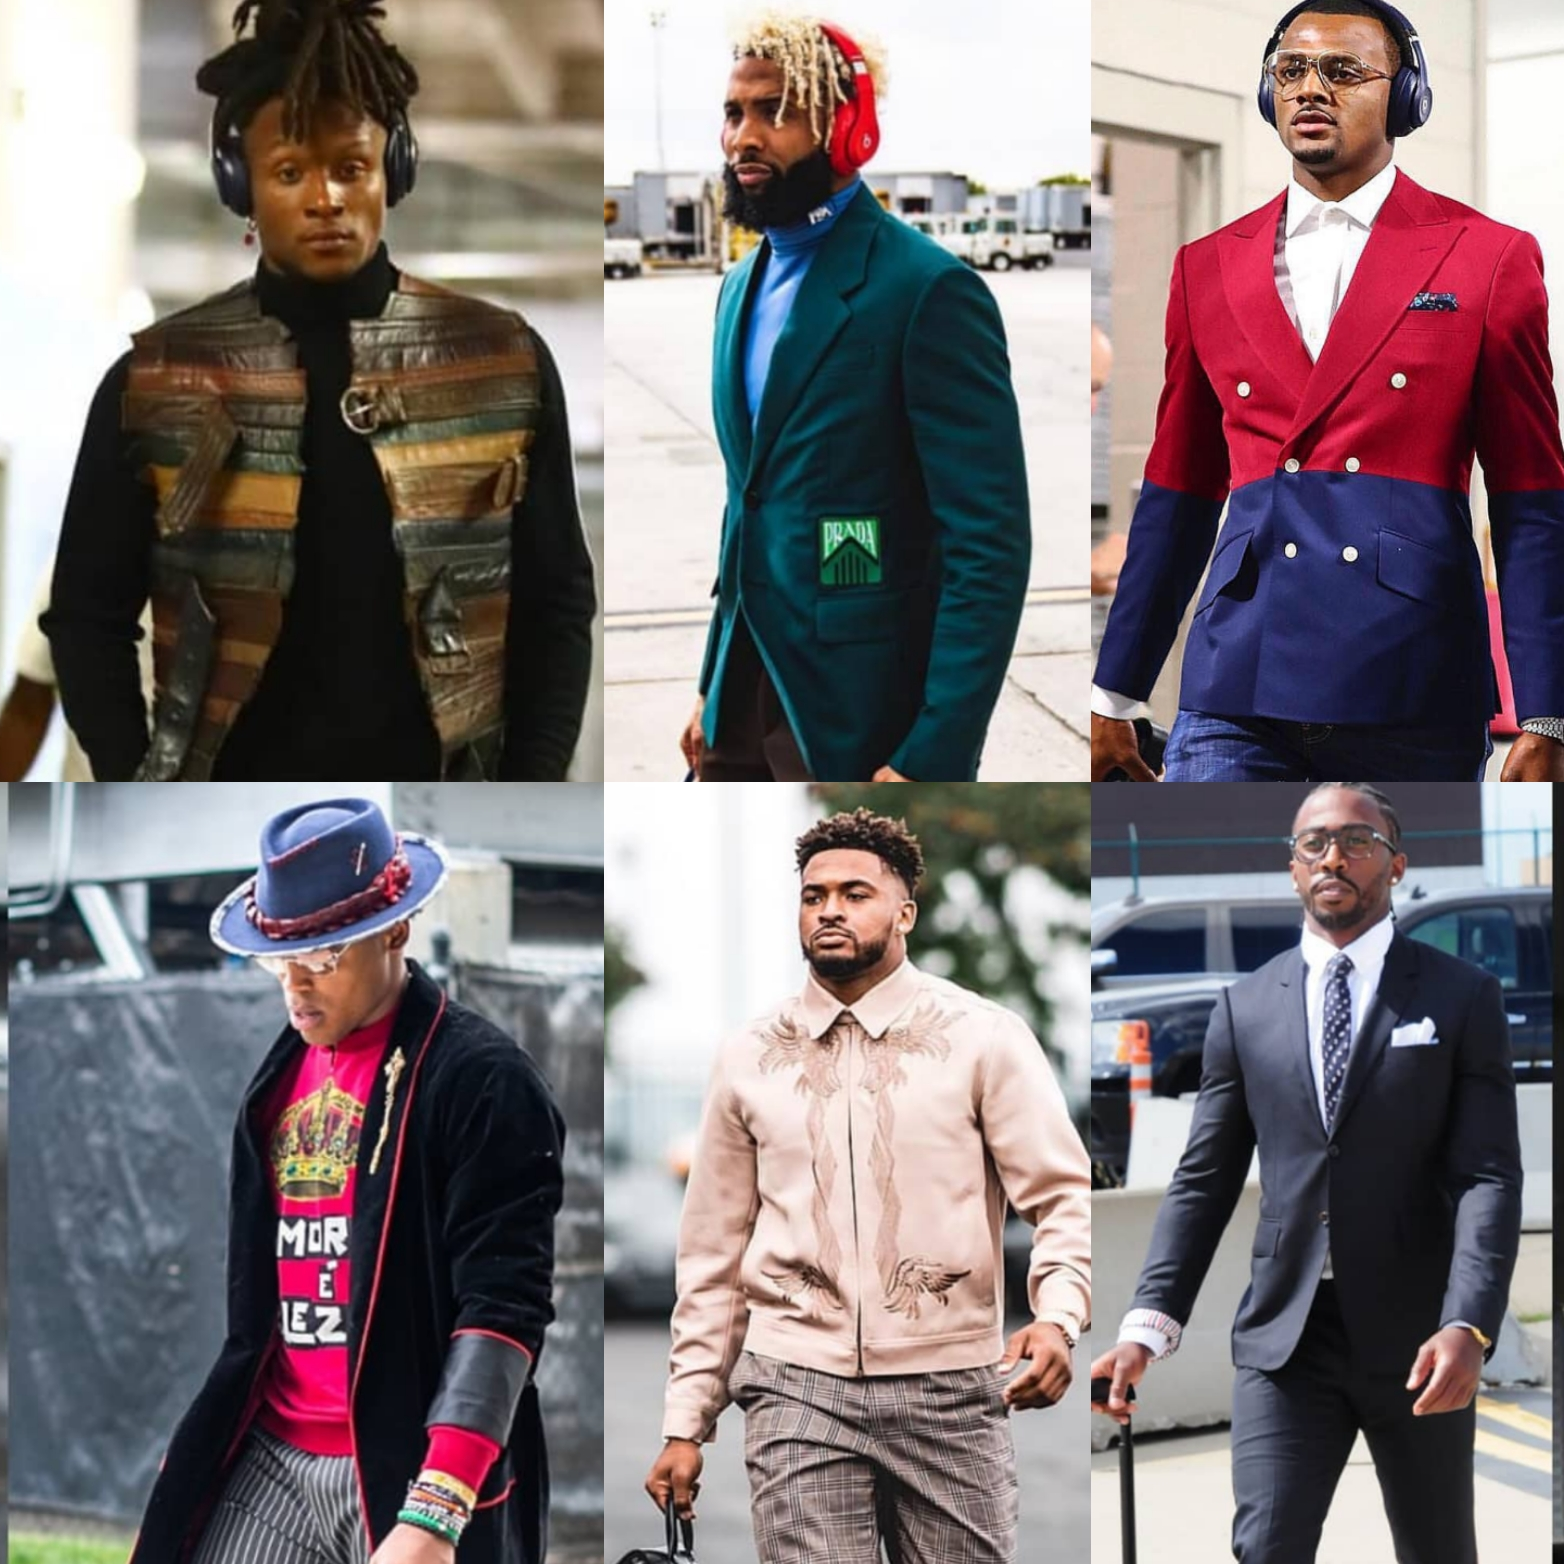 6 NFL Player's Style To Watch Right Now: Deandre Hopkins, Odell Beckham Jr, Deshaun Watson, Cam Newton, Jamal Adams & Tyrod Taylor